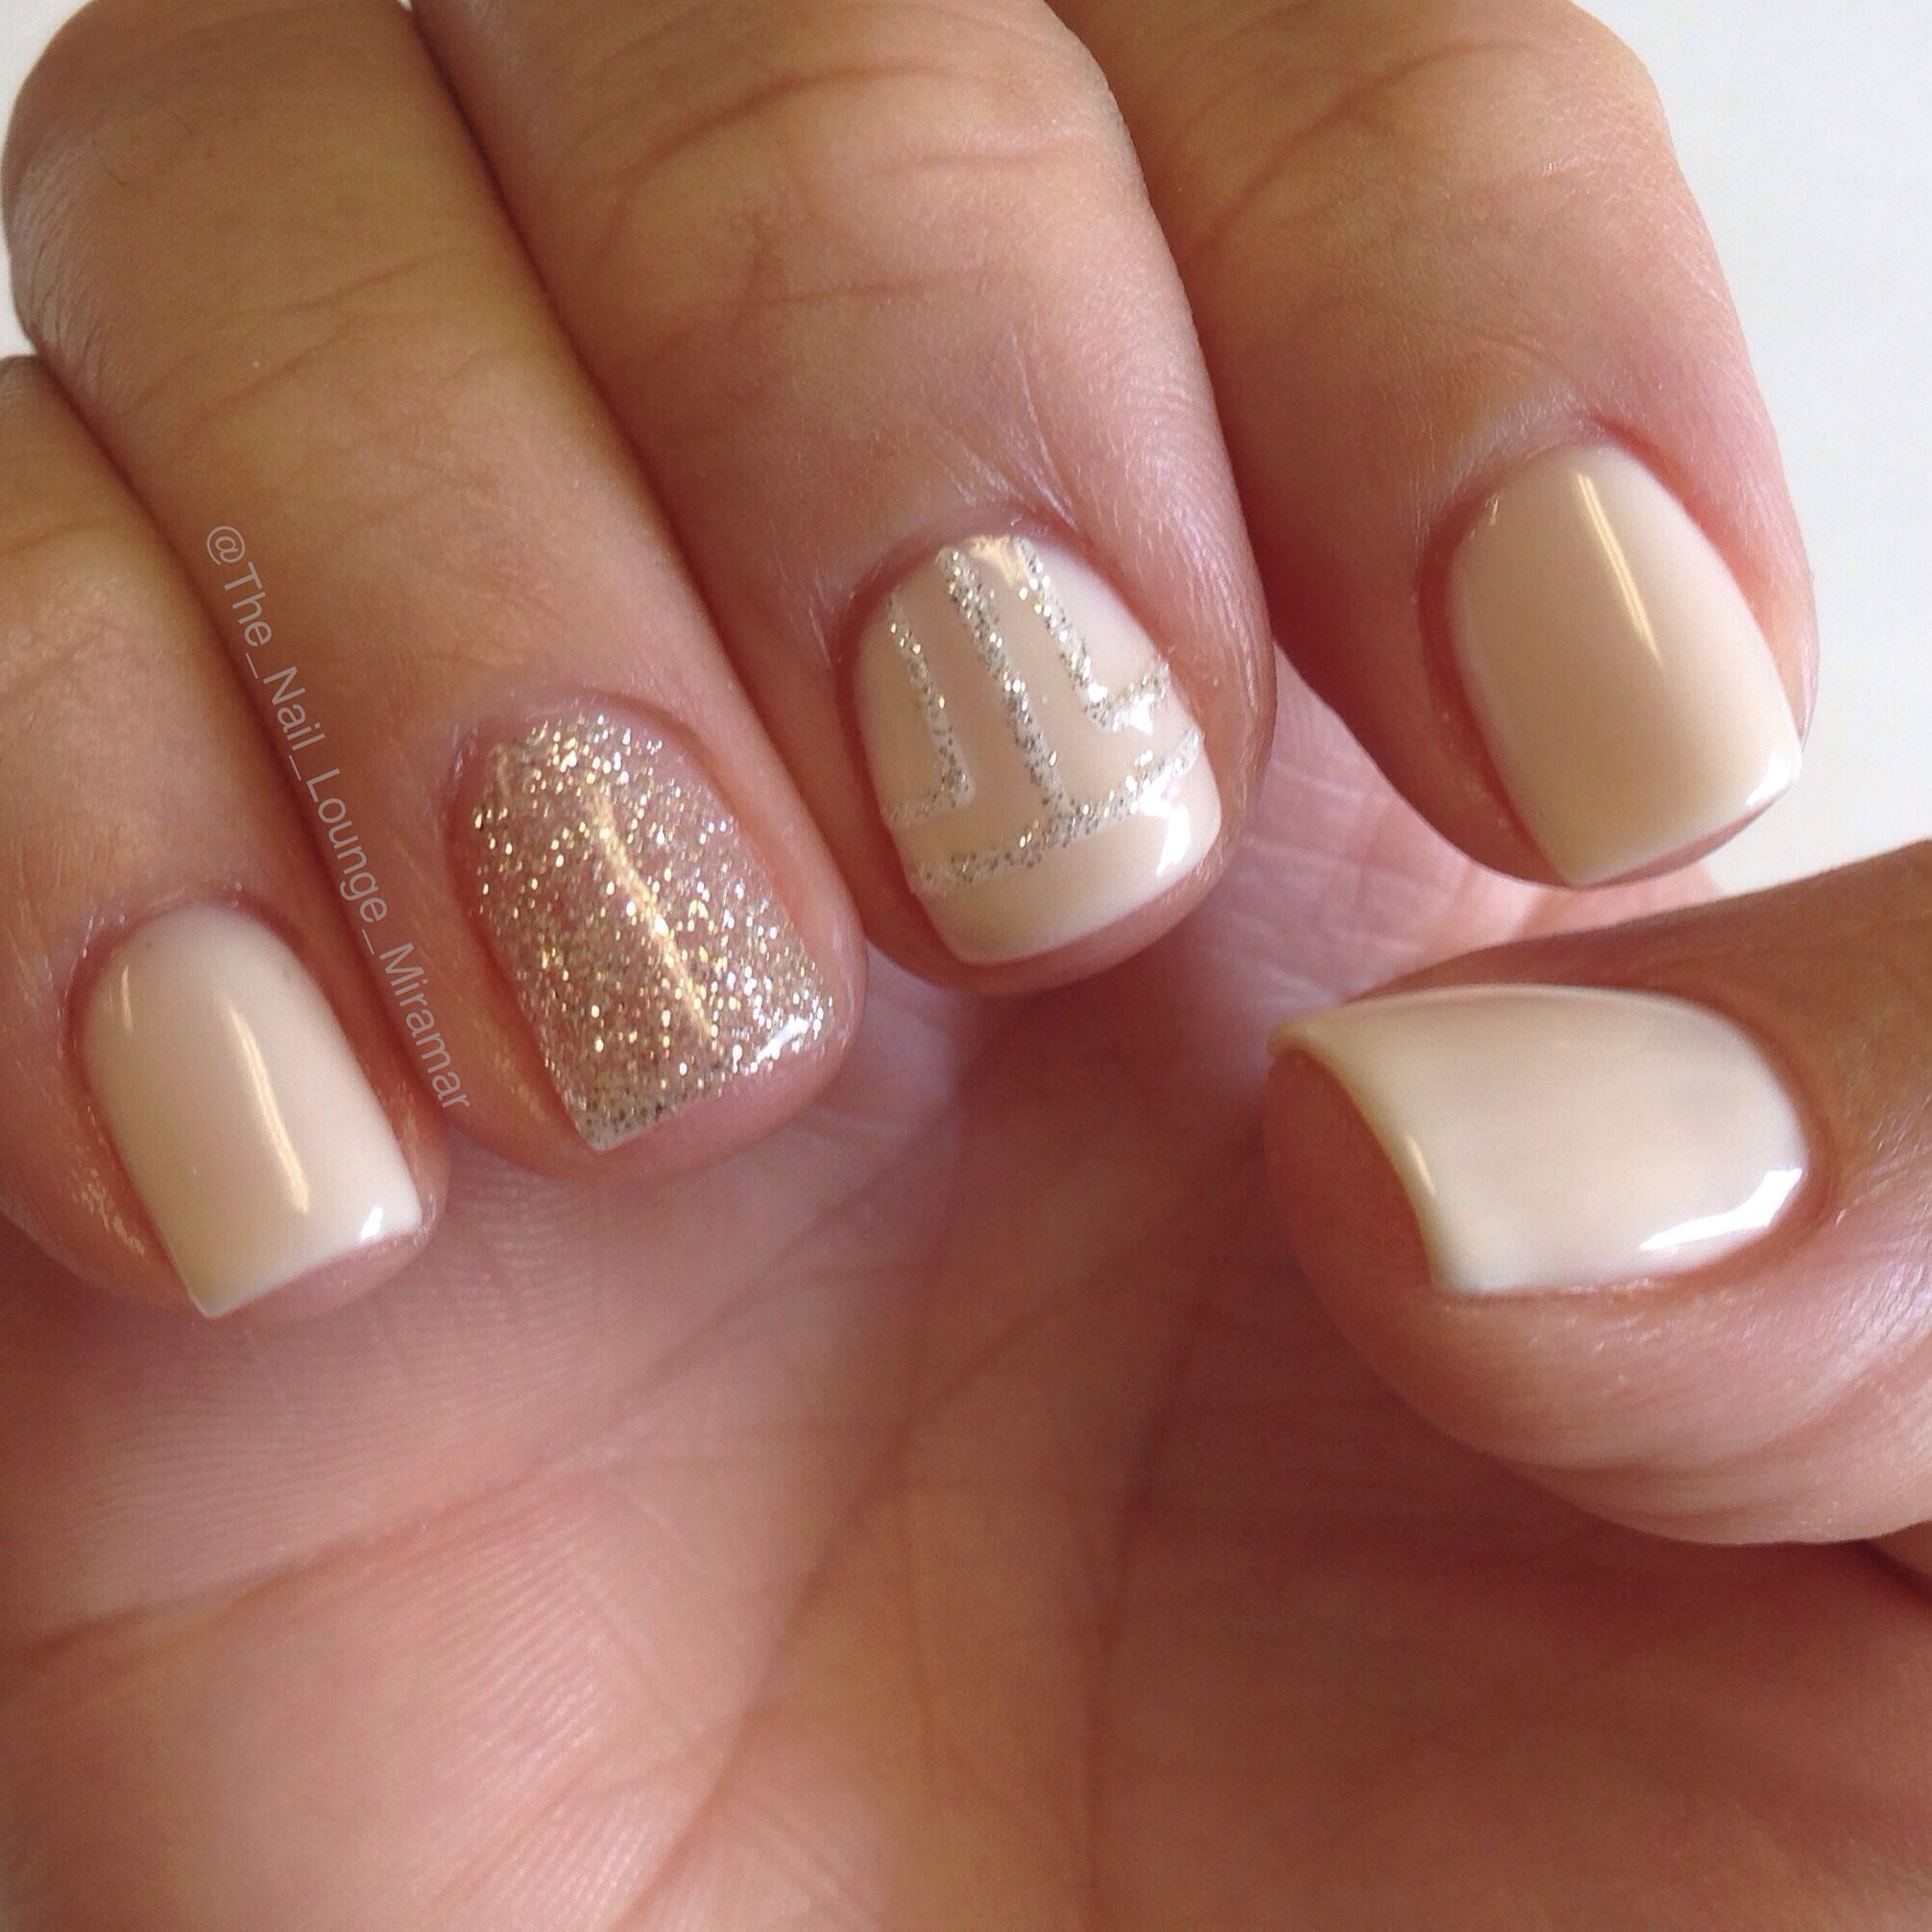 gelish ombre nails tutorial